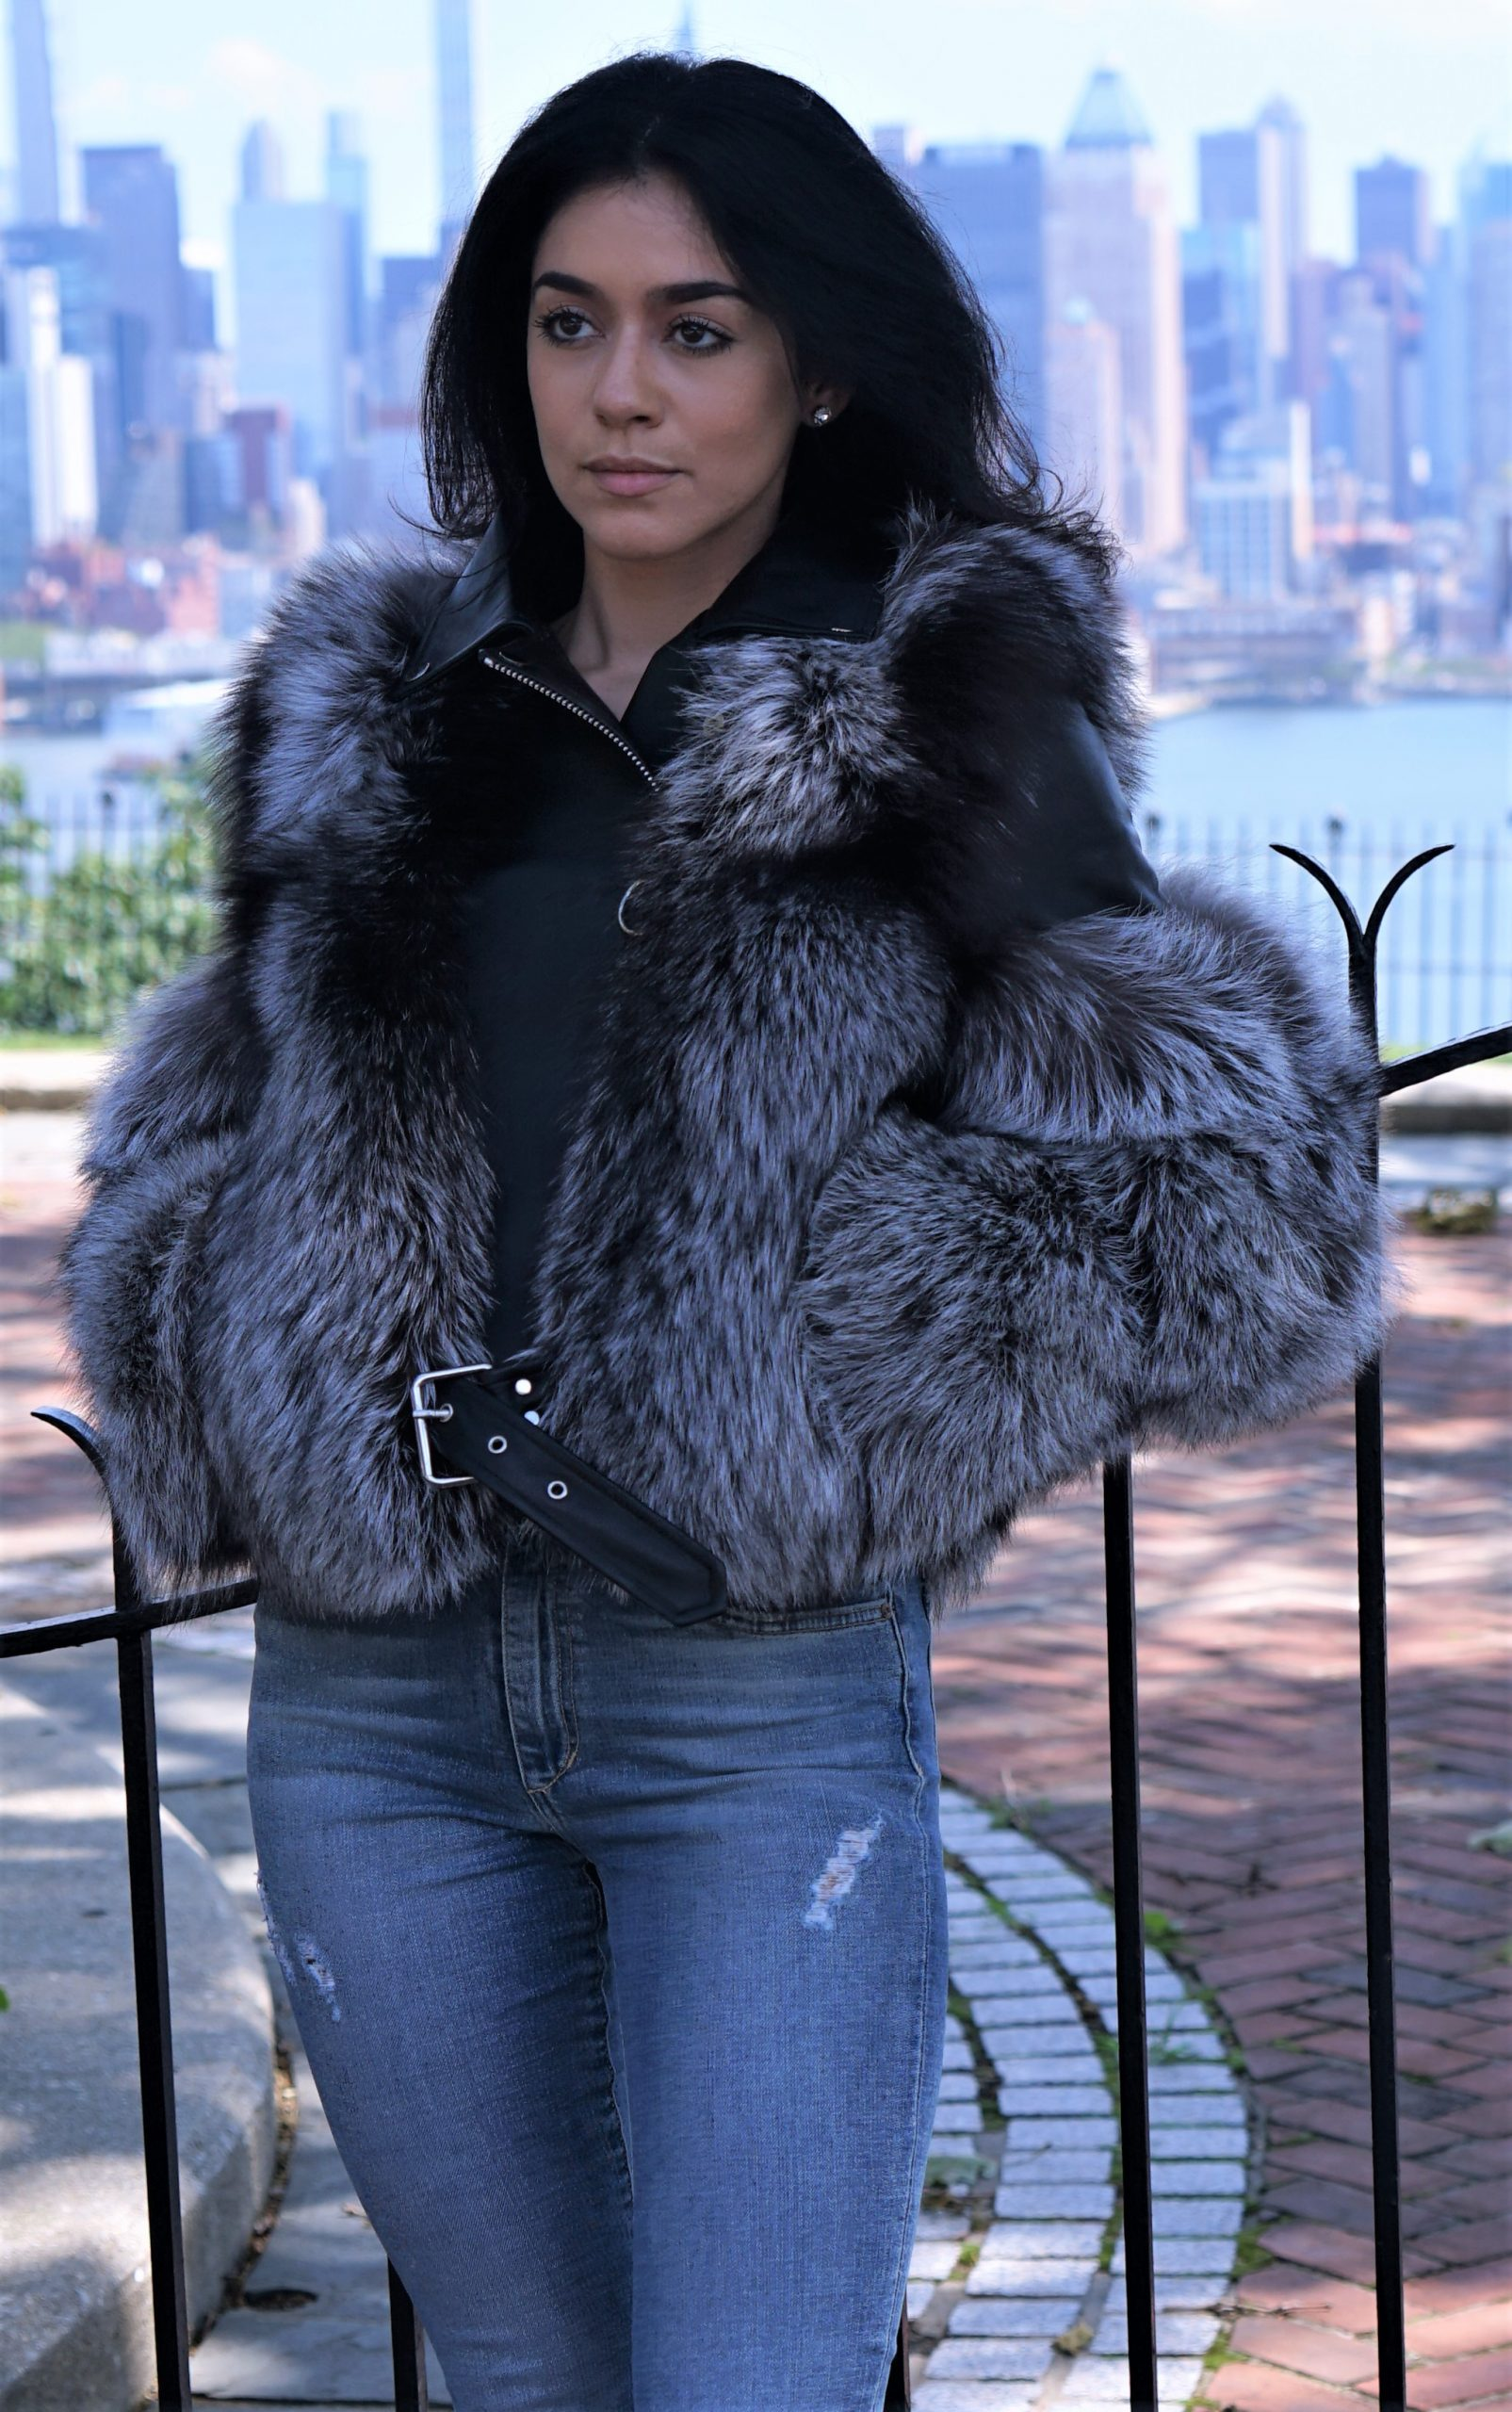 Silver Fox Jacket Black Leather Inserts